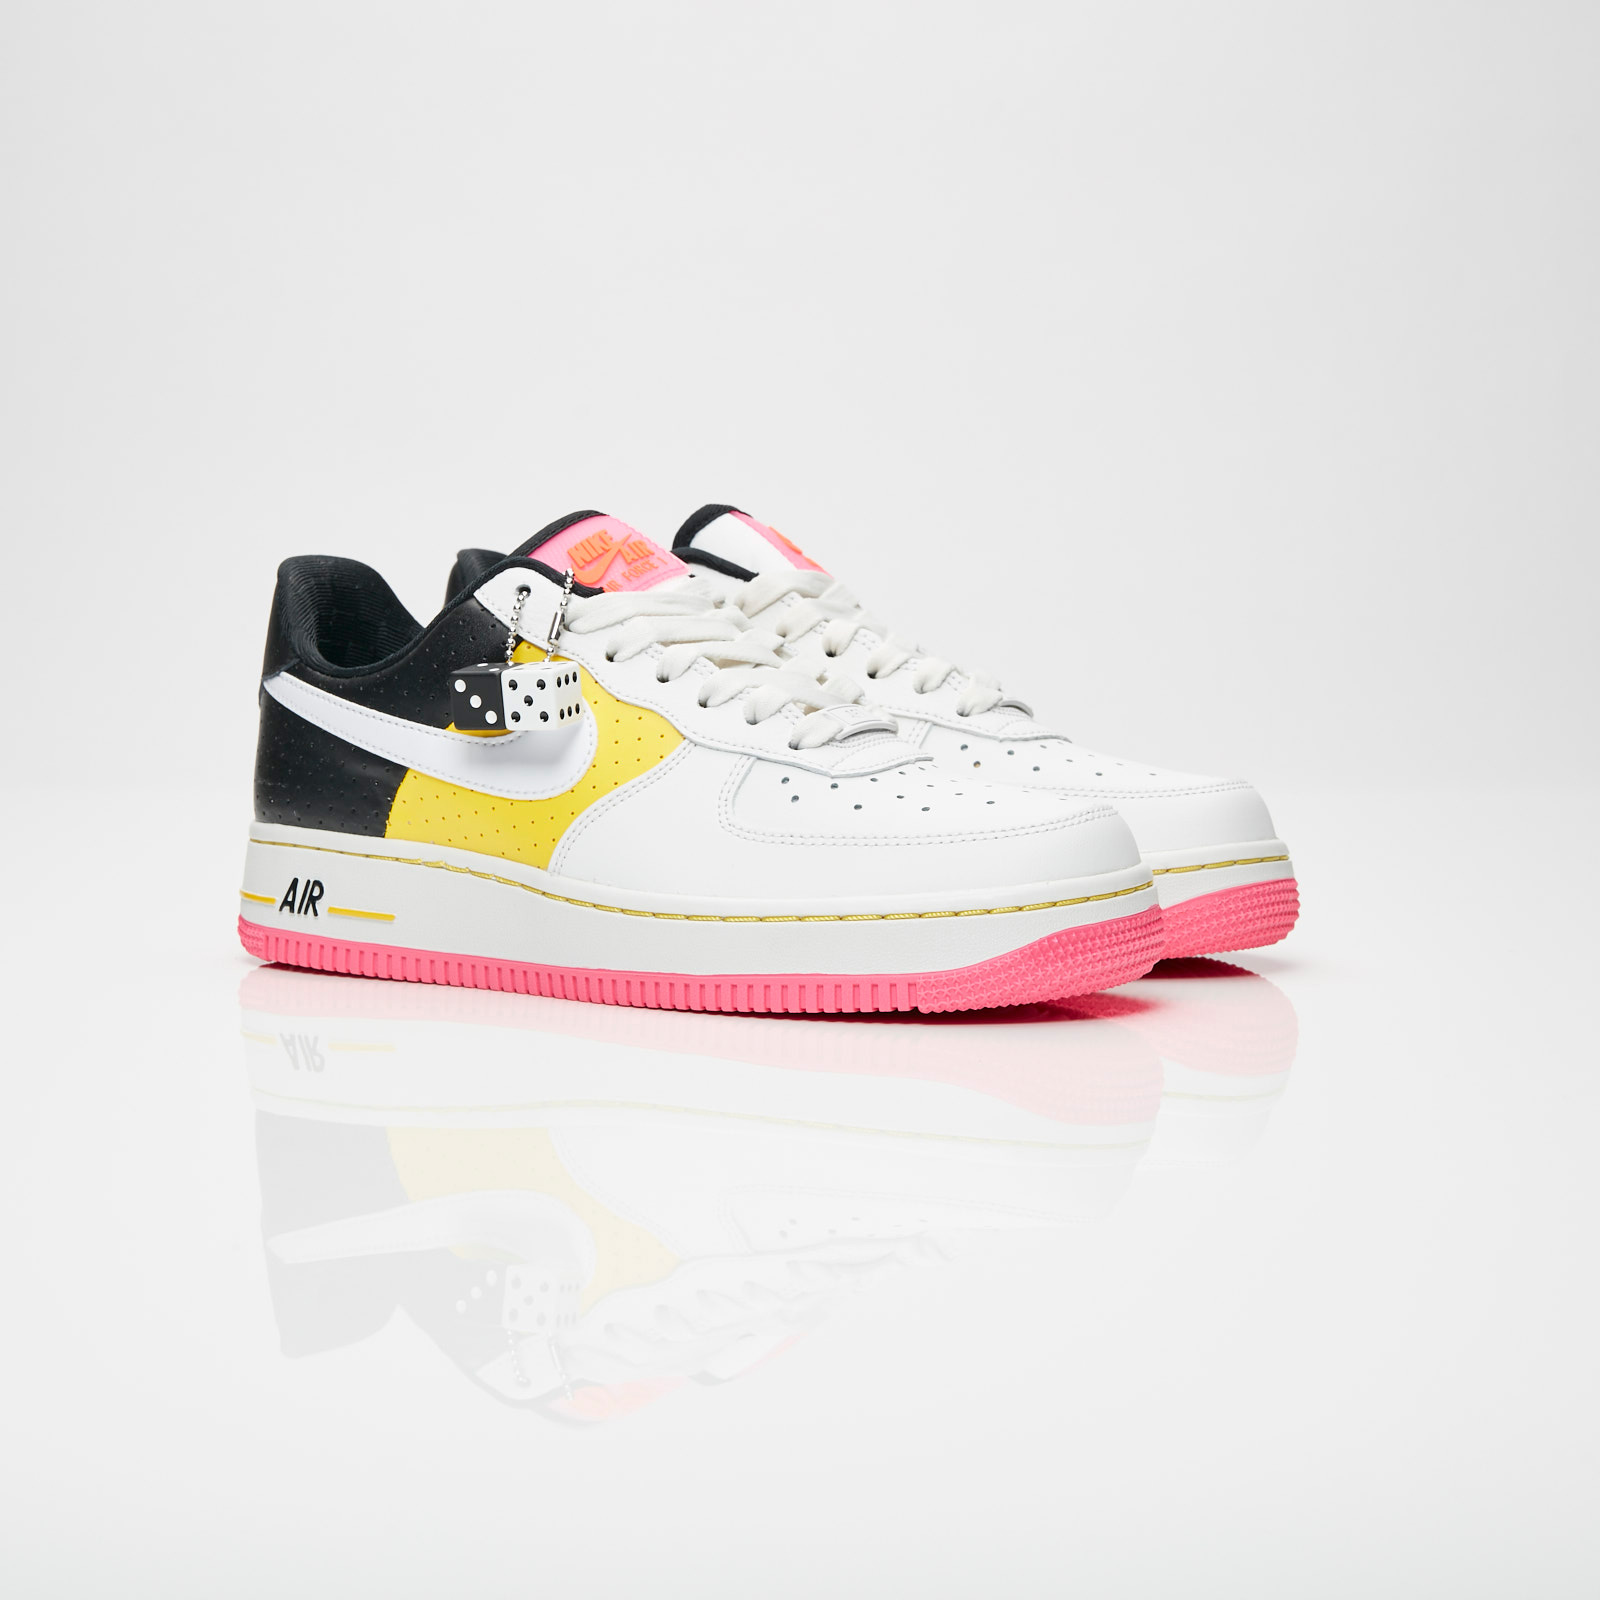 7135a479a05 Nike Wmns Air Force 1 07 SE Moto - At2583-100 - Sneakersnstuff ...